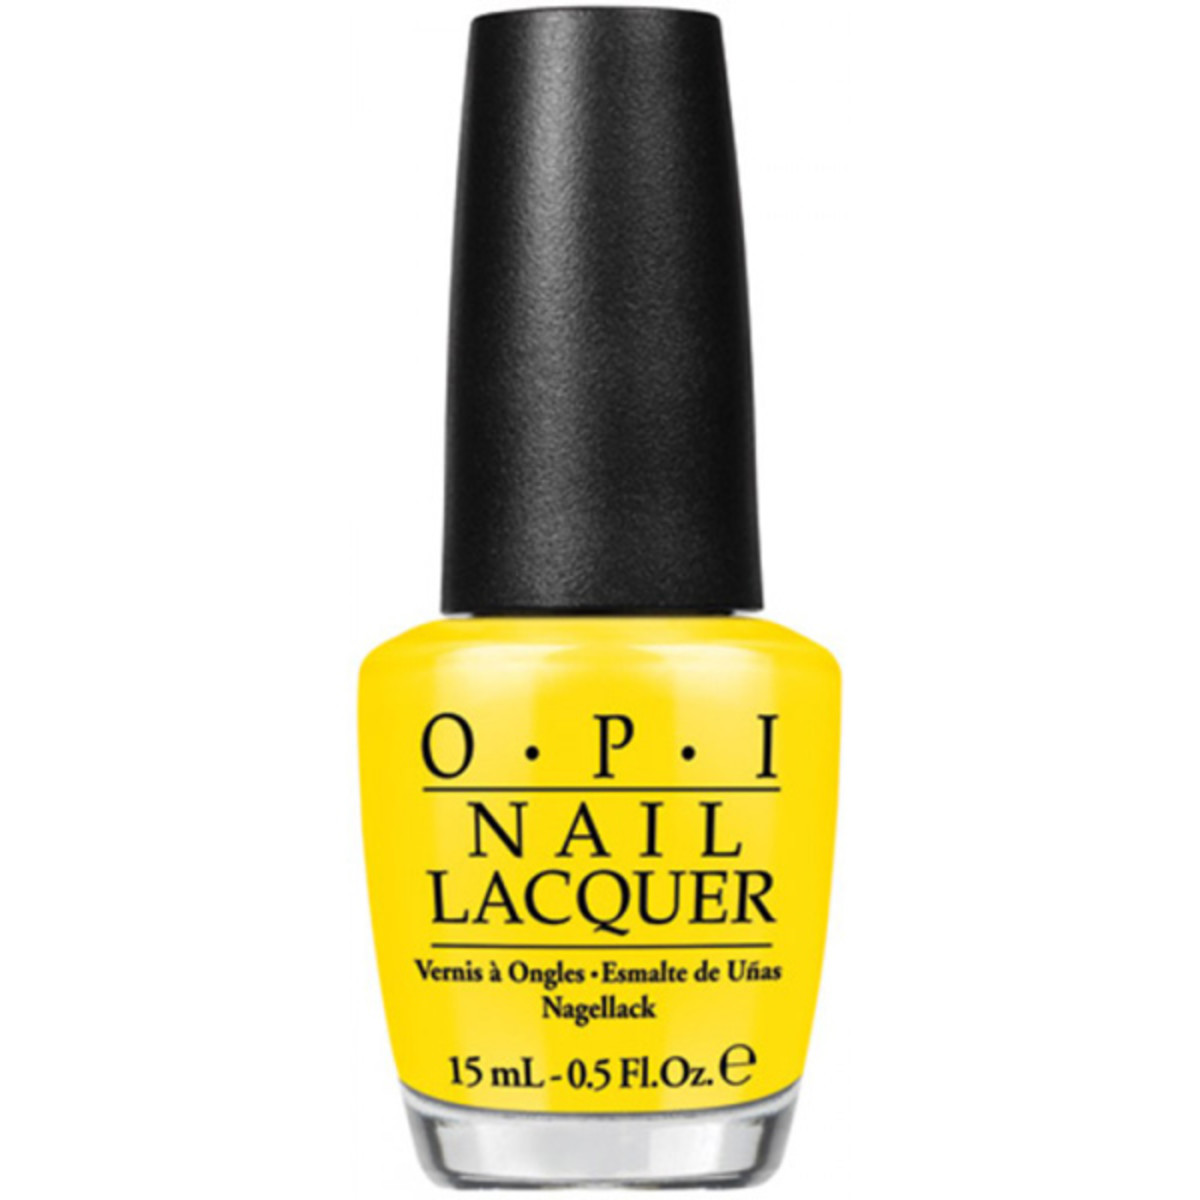 OPI Nail Lacquer in I Just Can't Cope-acabana